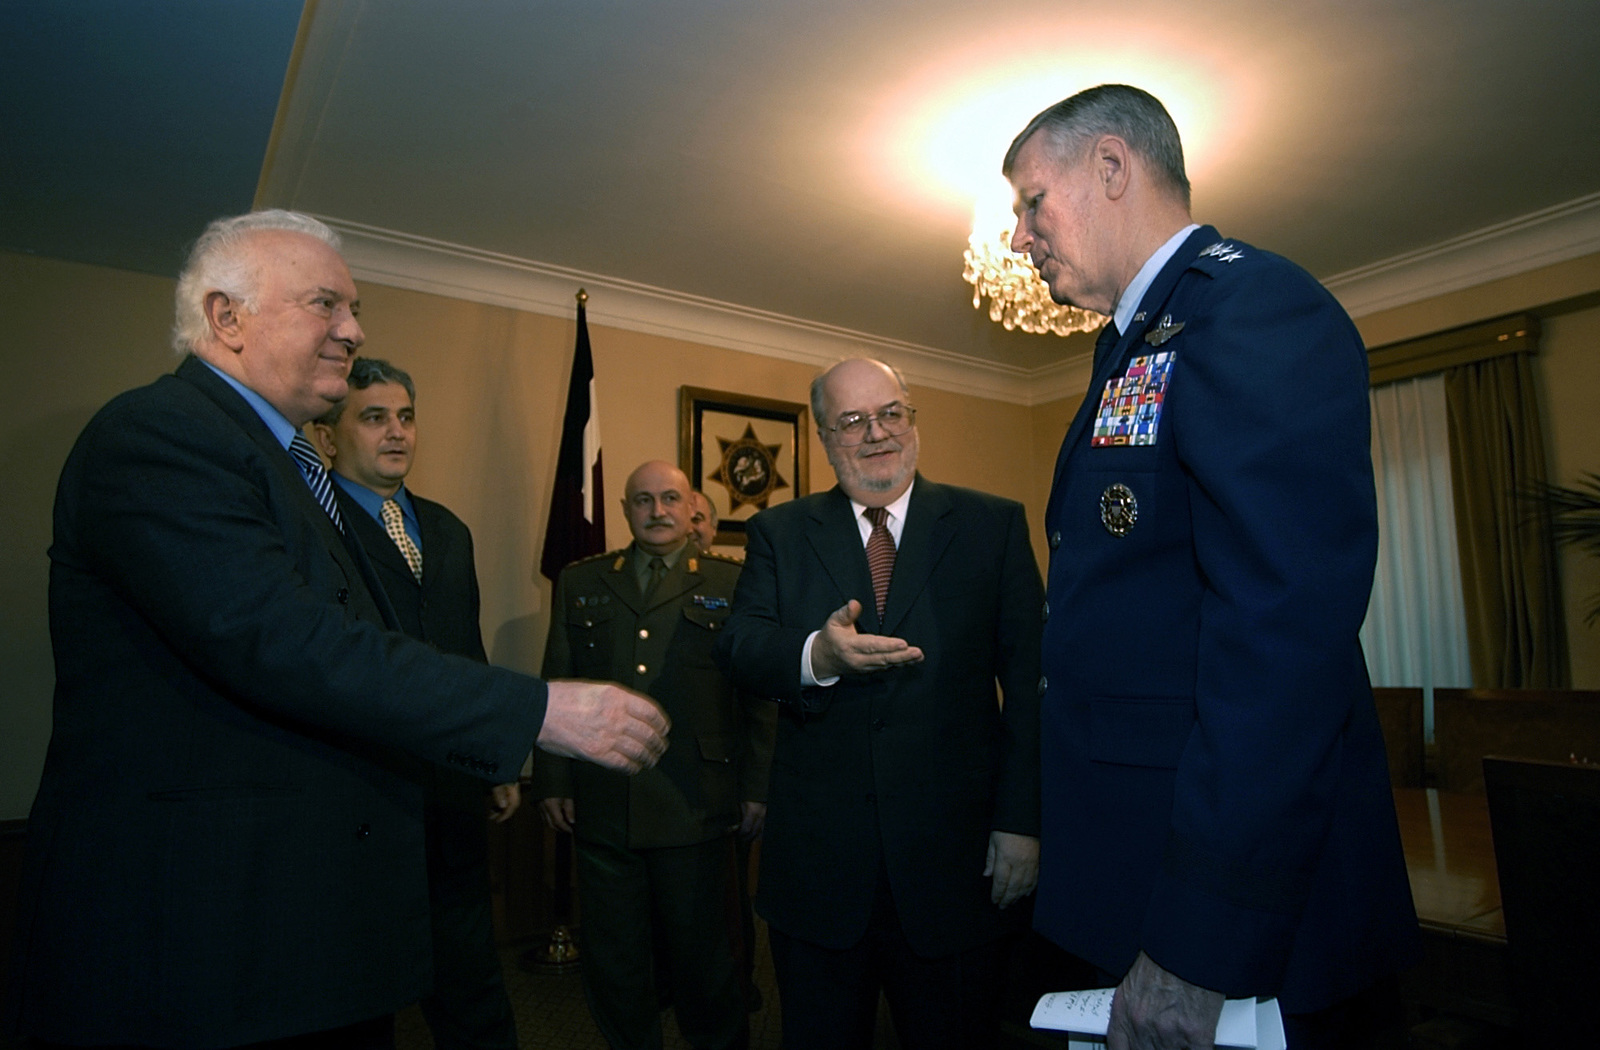 The Honorable Richard Miles (center), US Ambassador to the Republic of Georgia, introduces US Air Force (USAF) General (GEN) Richard B. Myers (right), Chairman of the Joint Chiefs of STAFF (JCS), to Georgian President Eduard Shevardnadze. General Myers is meeting with top Georgian military officials and President Shevardnadze to discuss the Georgia Train and Equip Program (GTEP). GTEP is a flexible, time phased training initiative that builds upon a strong military-to-military relationship developed between the US and the Republic of Georgia since the end of the Cold War, and further underscores US support for the Republic of Georgia's sovereignty, independence and territorial integrity